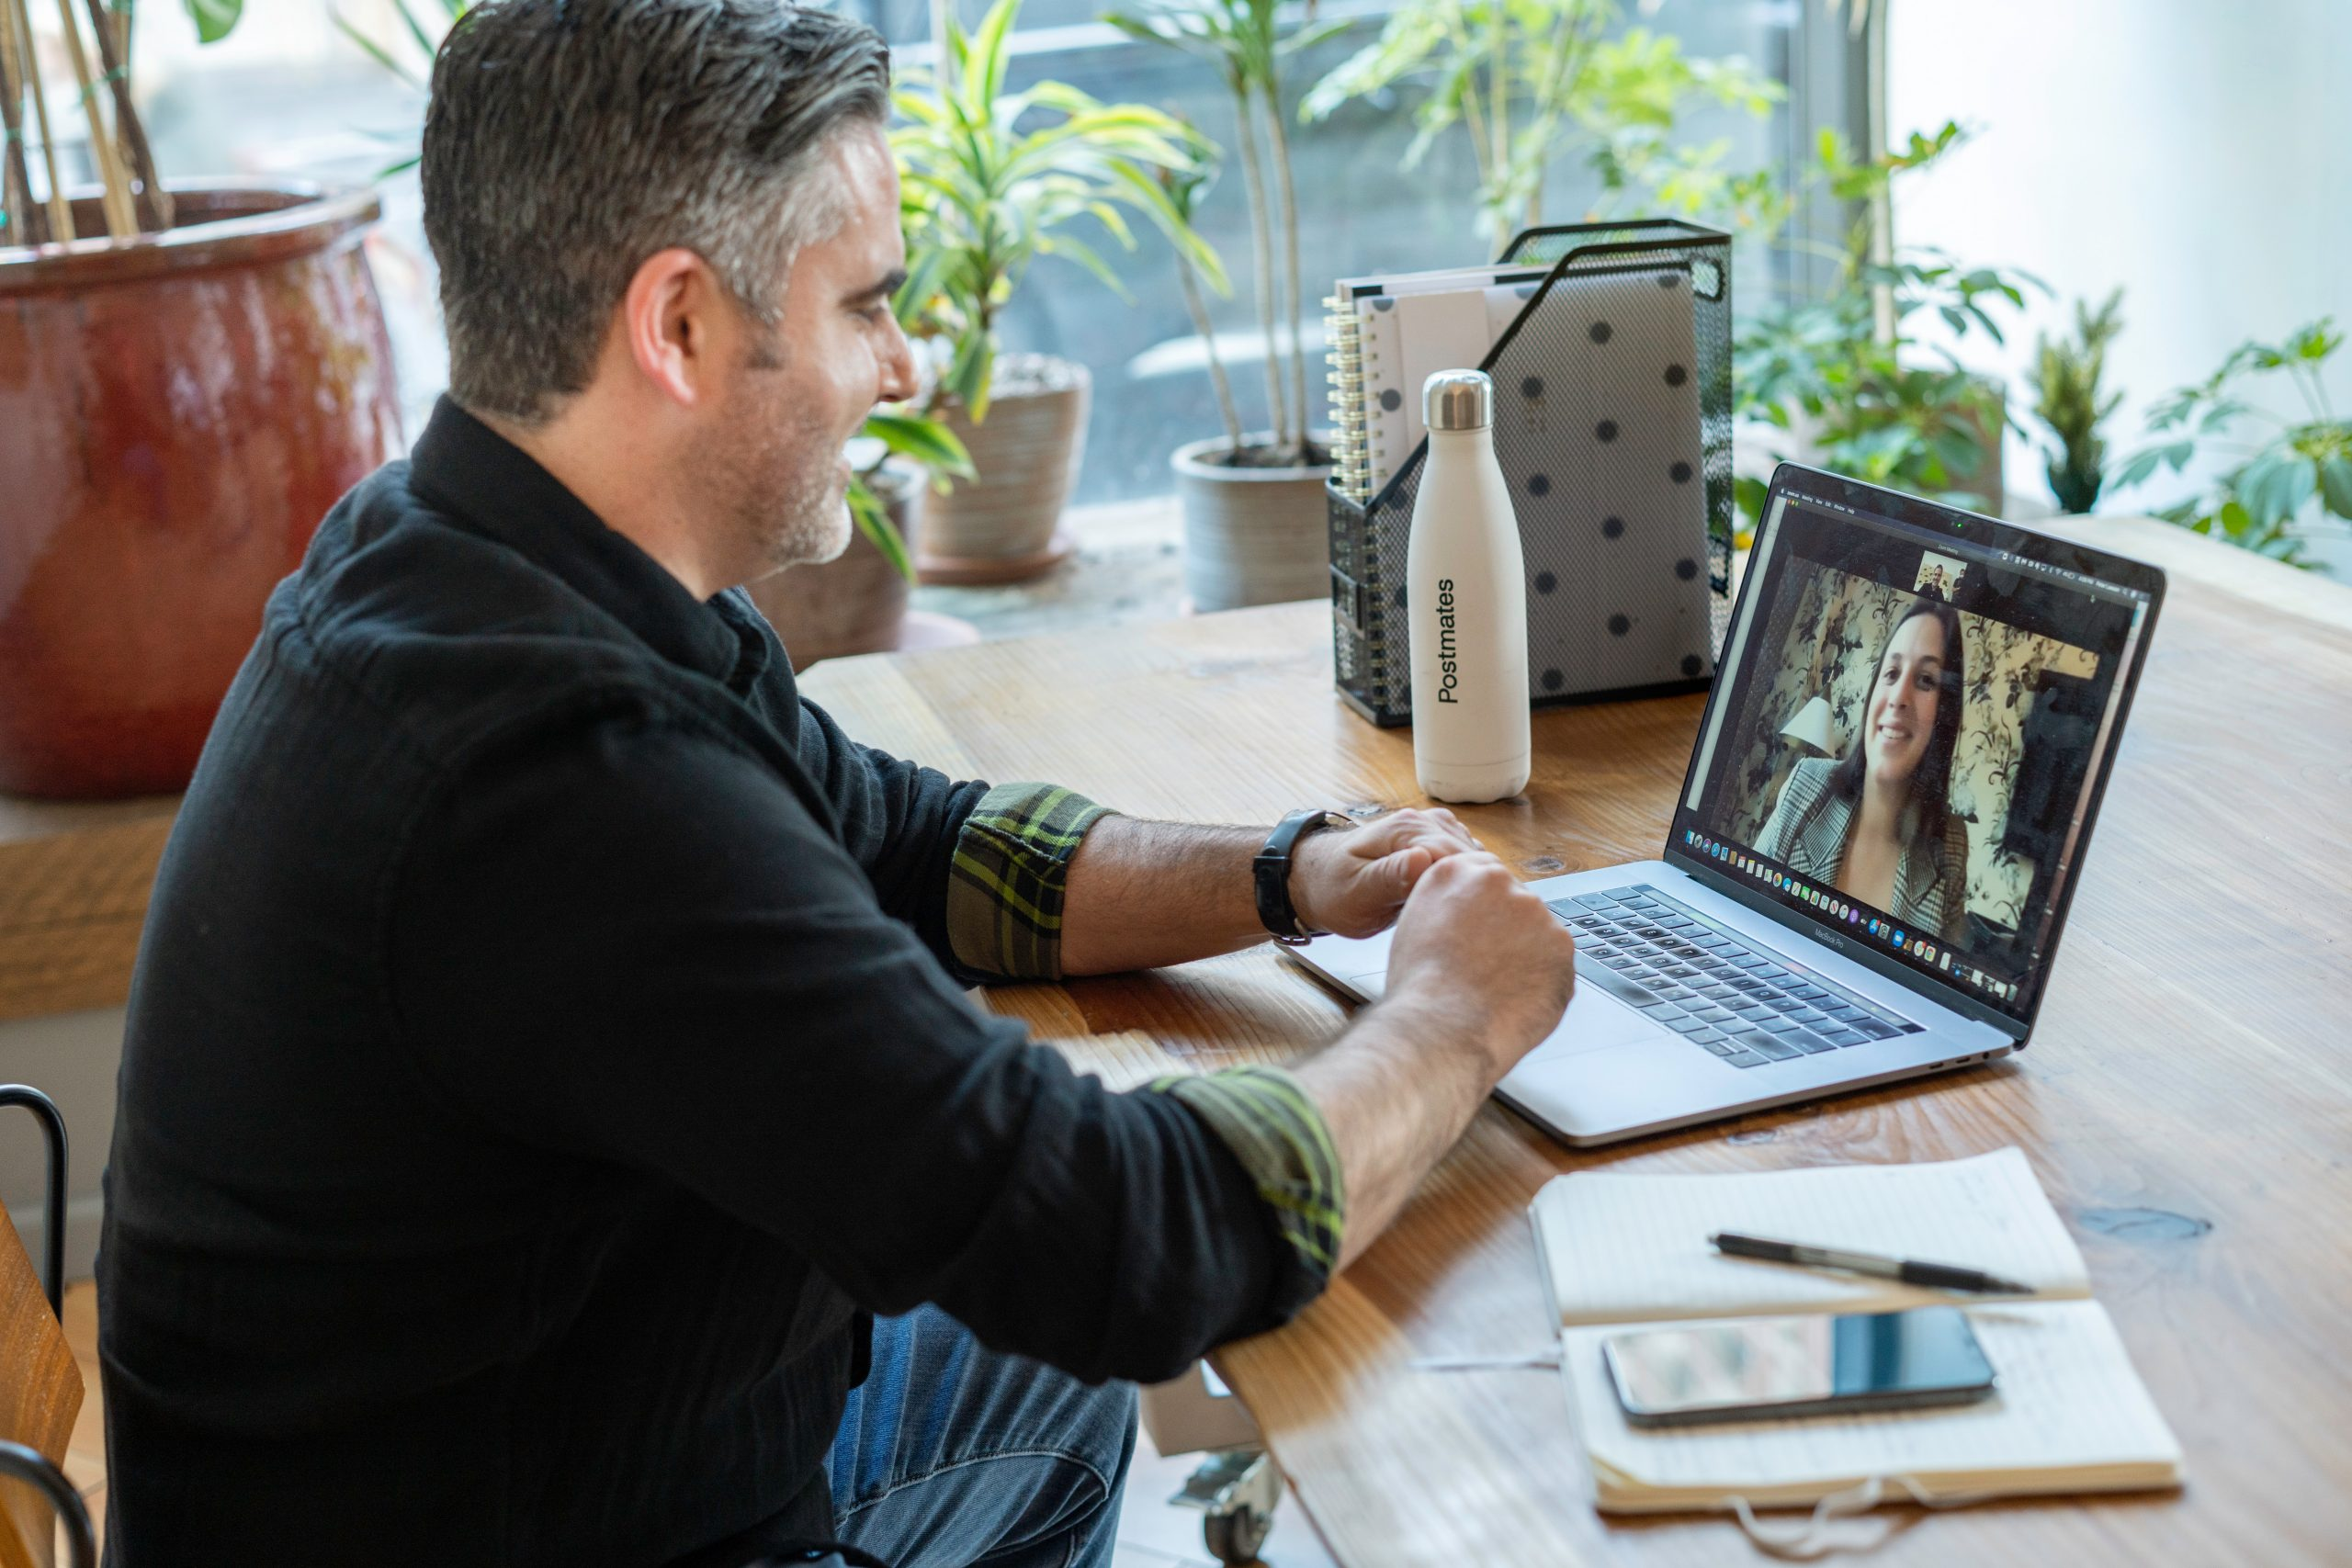 Meeting with a doctor in a telehealth appointment